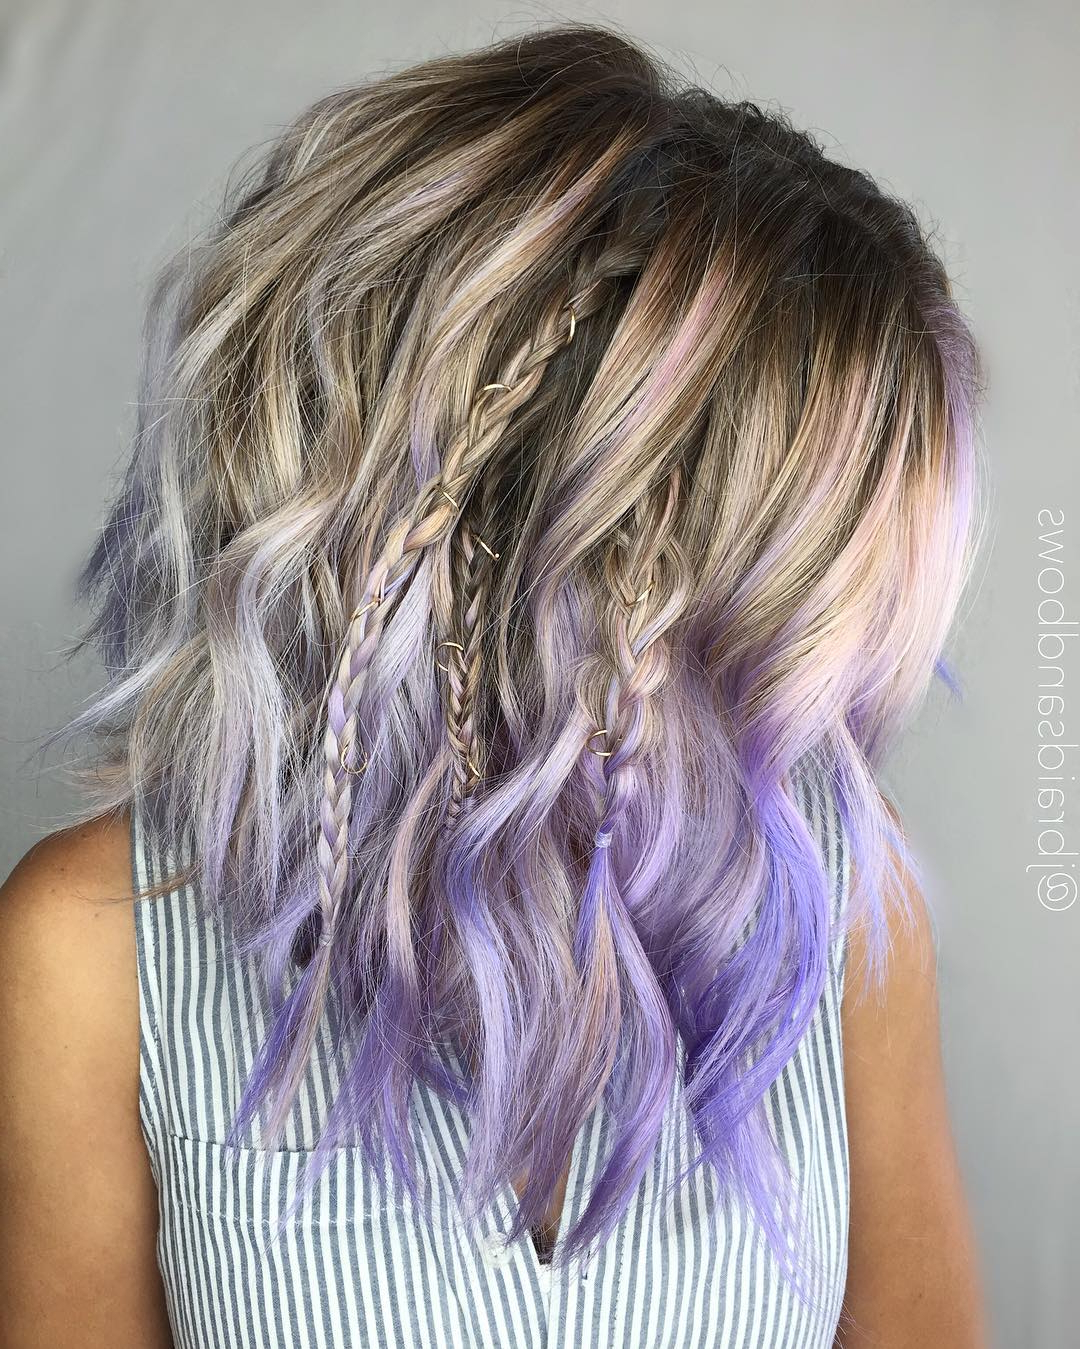 20 Gorgeous Prom Hairstyle Designs For Short Hair: Prom Hairstyles 2017 With Cute Hairstyles For Short Hair For Homecoming (View 10 of 25)